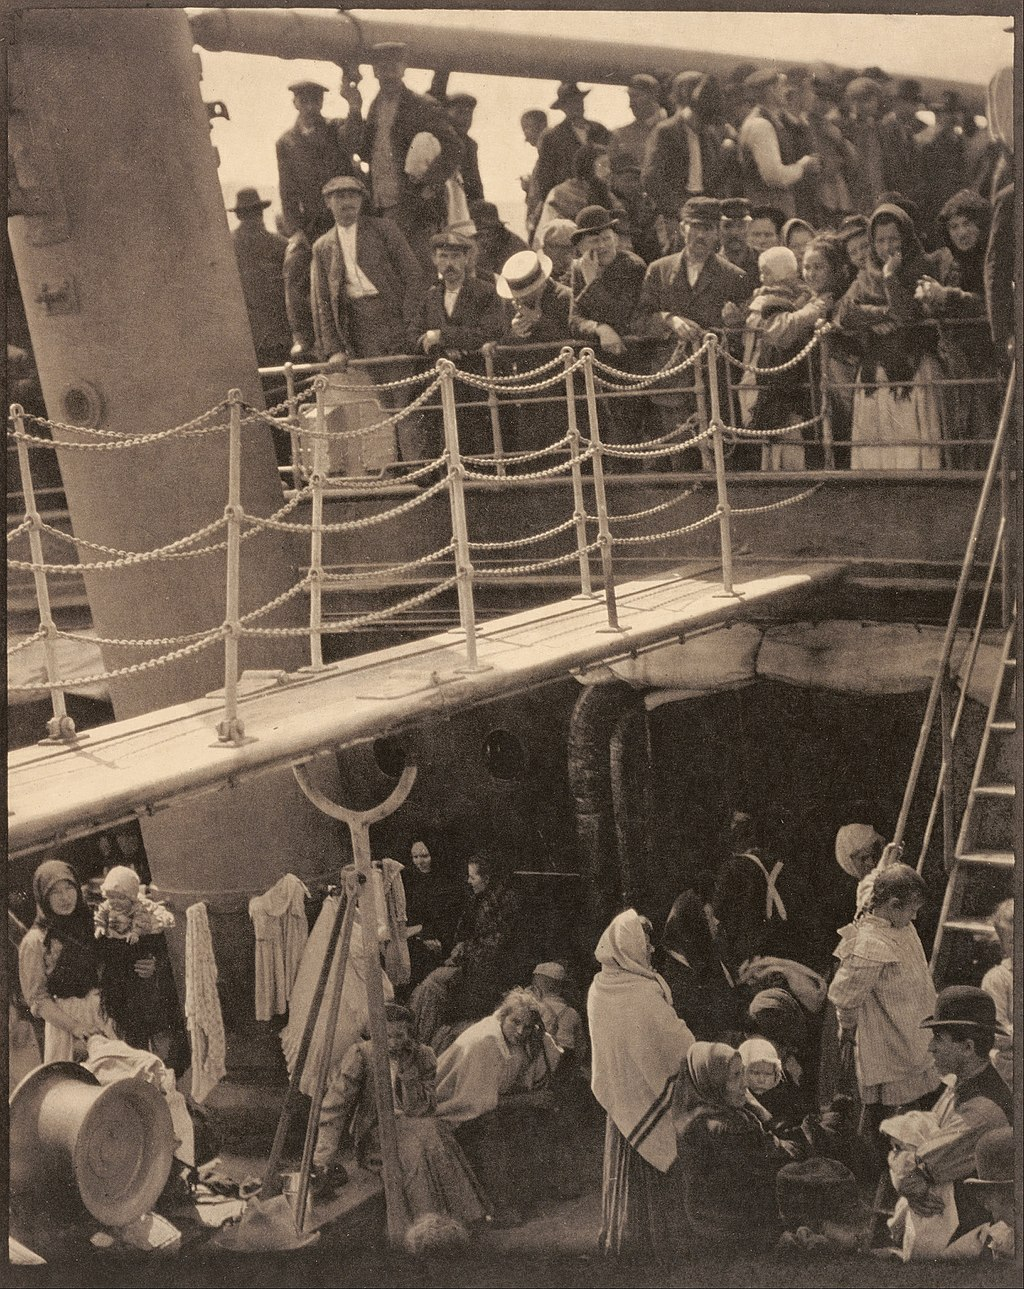 The Steerage  by Alfred Stieglitz. This version was published in 1915.